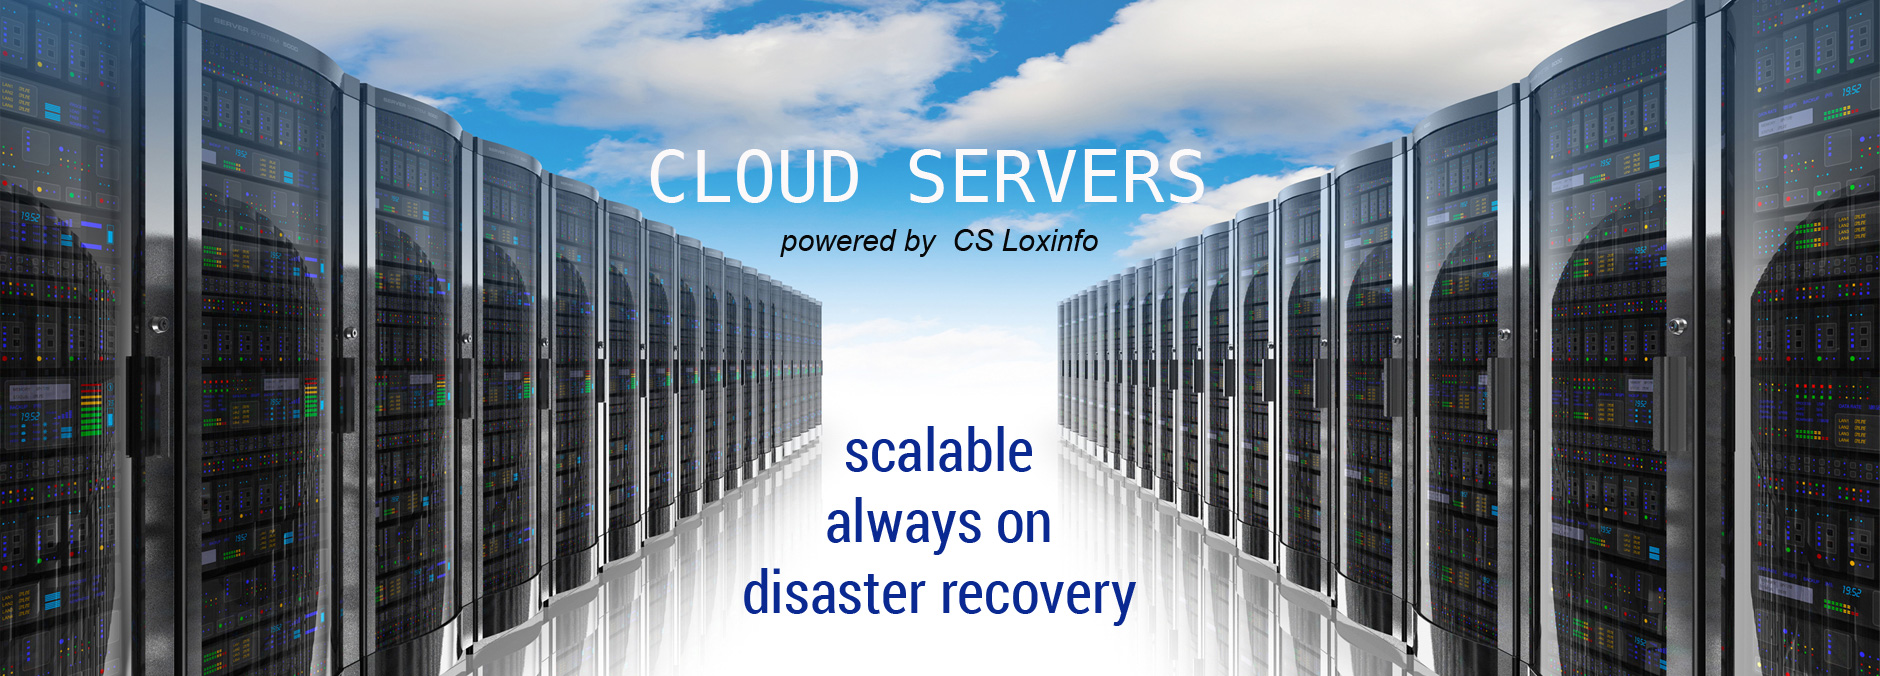 Cloud servers - powered by CS Loxinfo